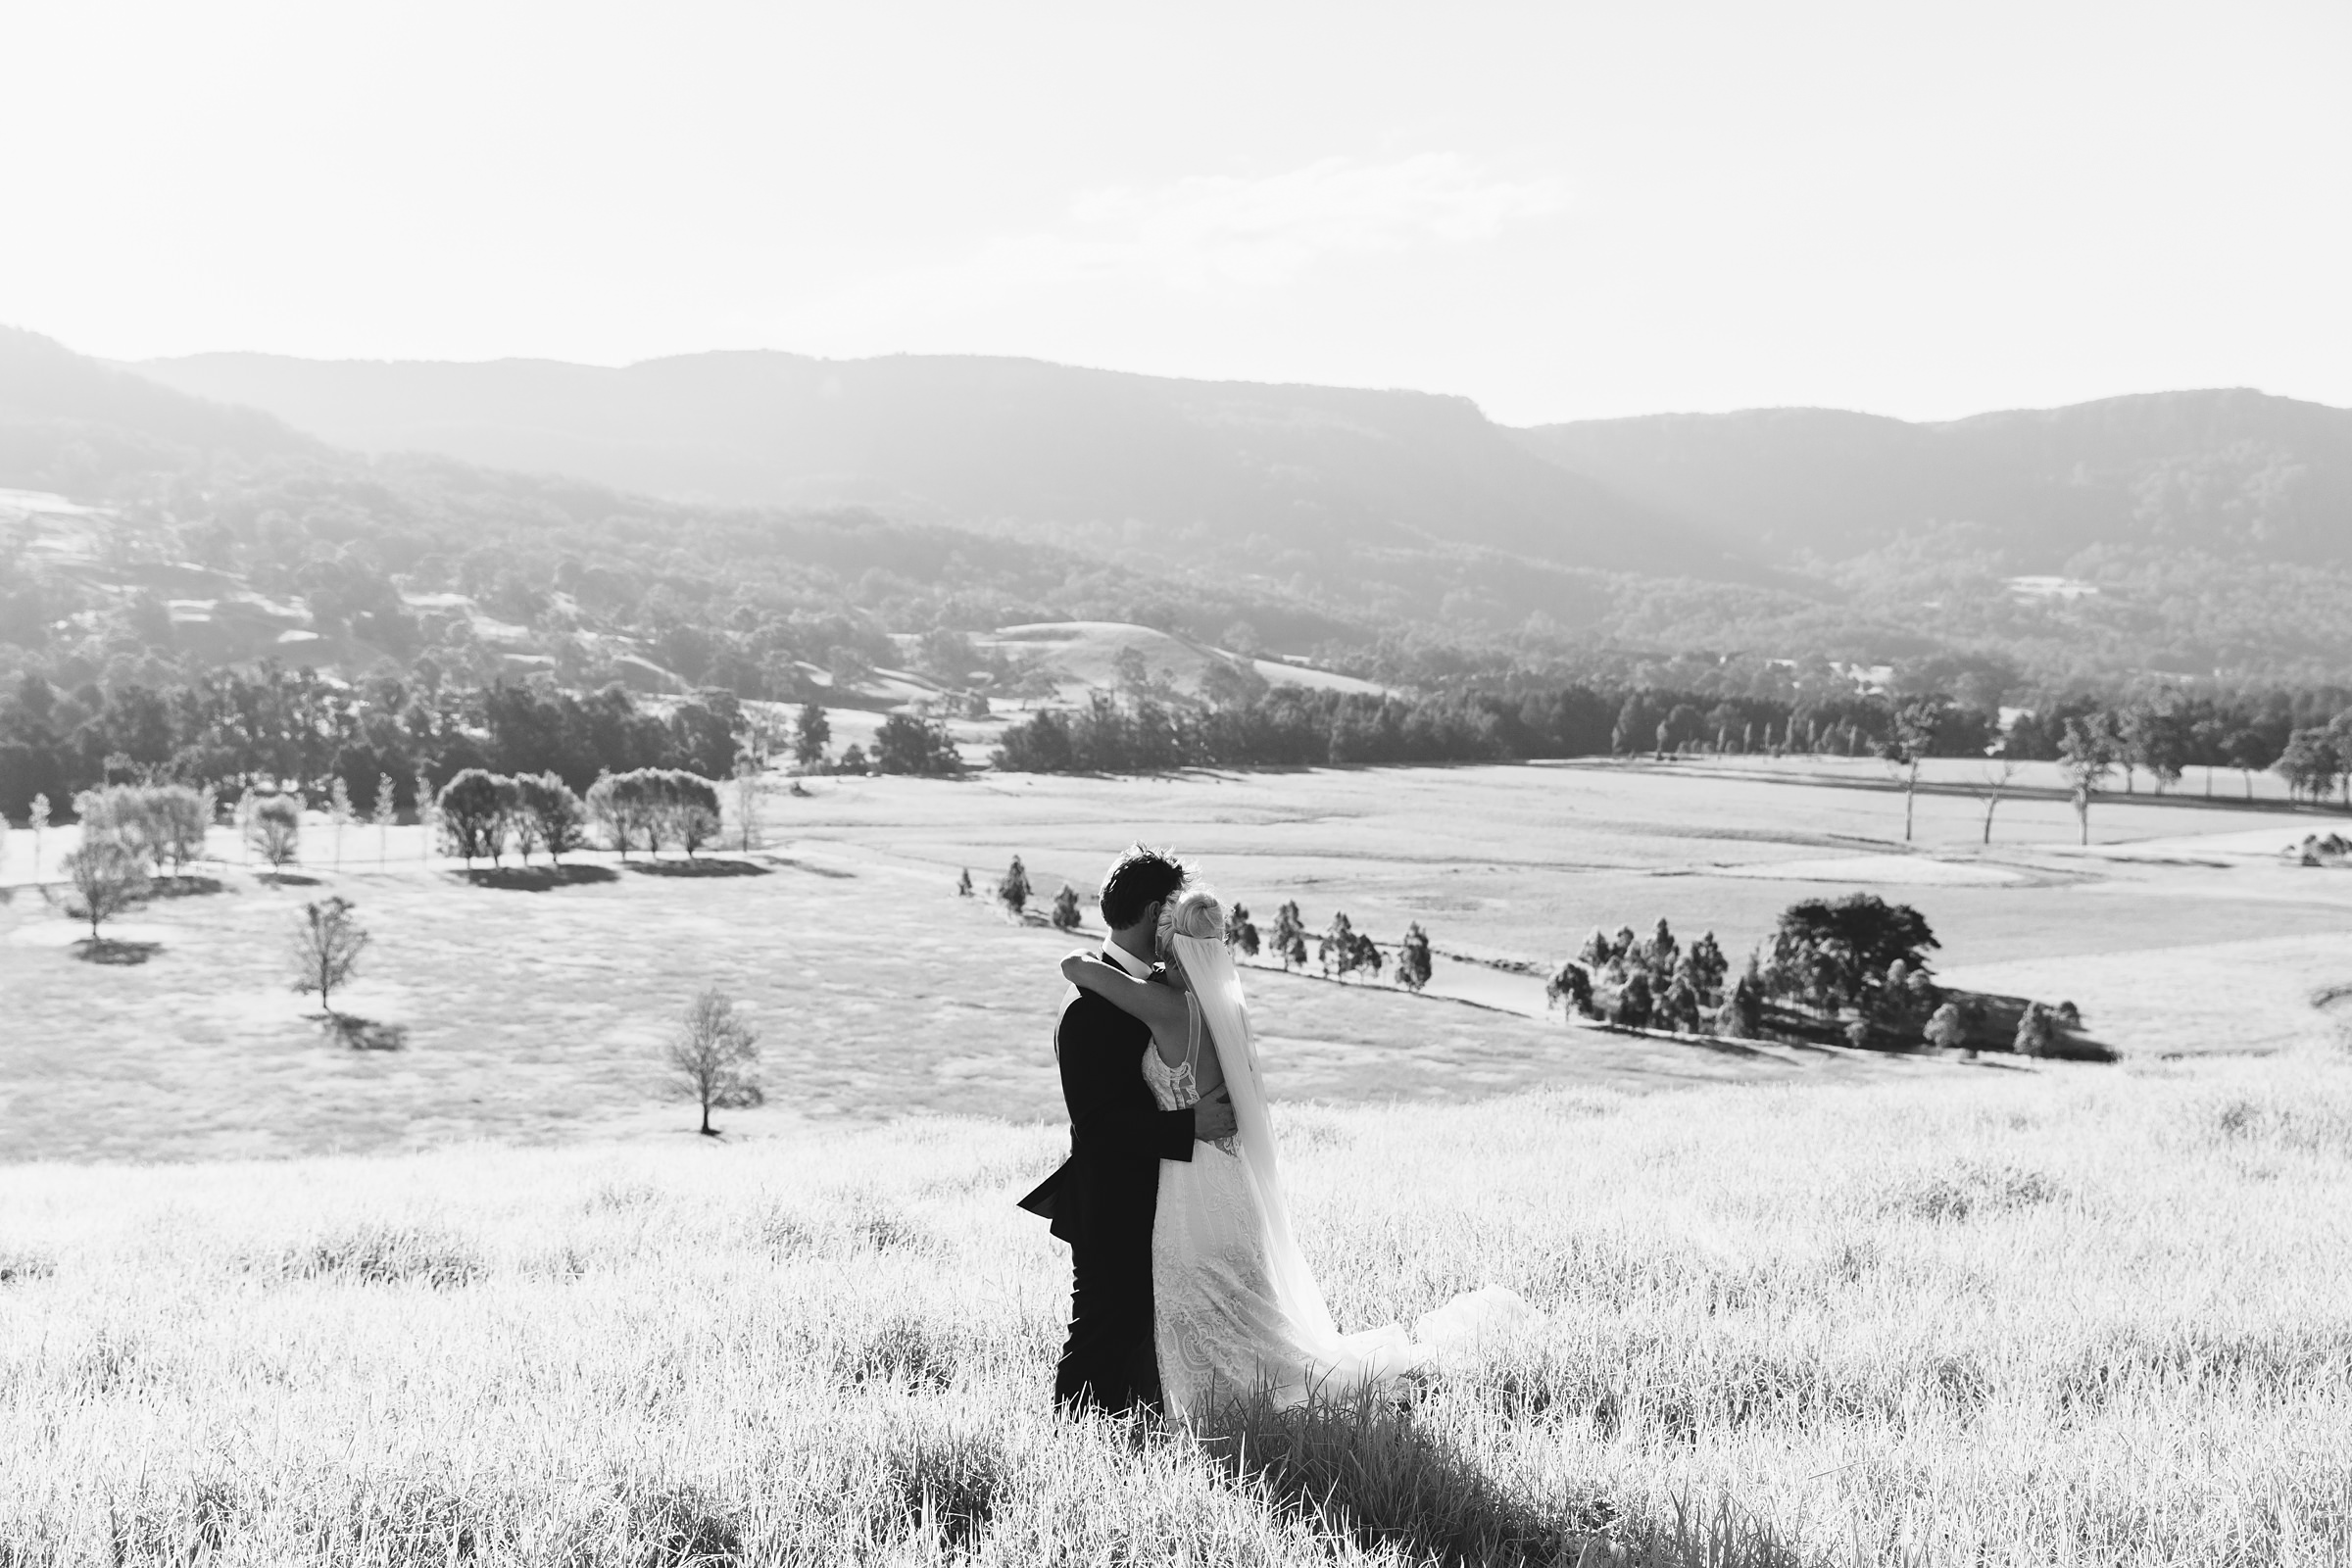 wedding sunset photos in kangaroo valley